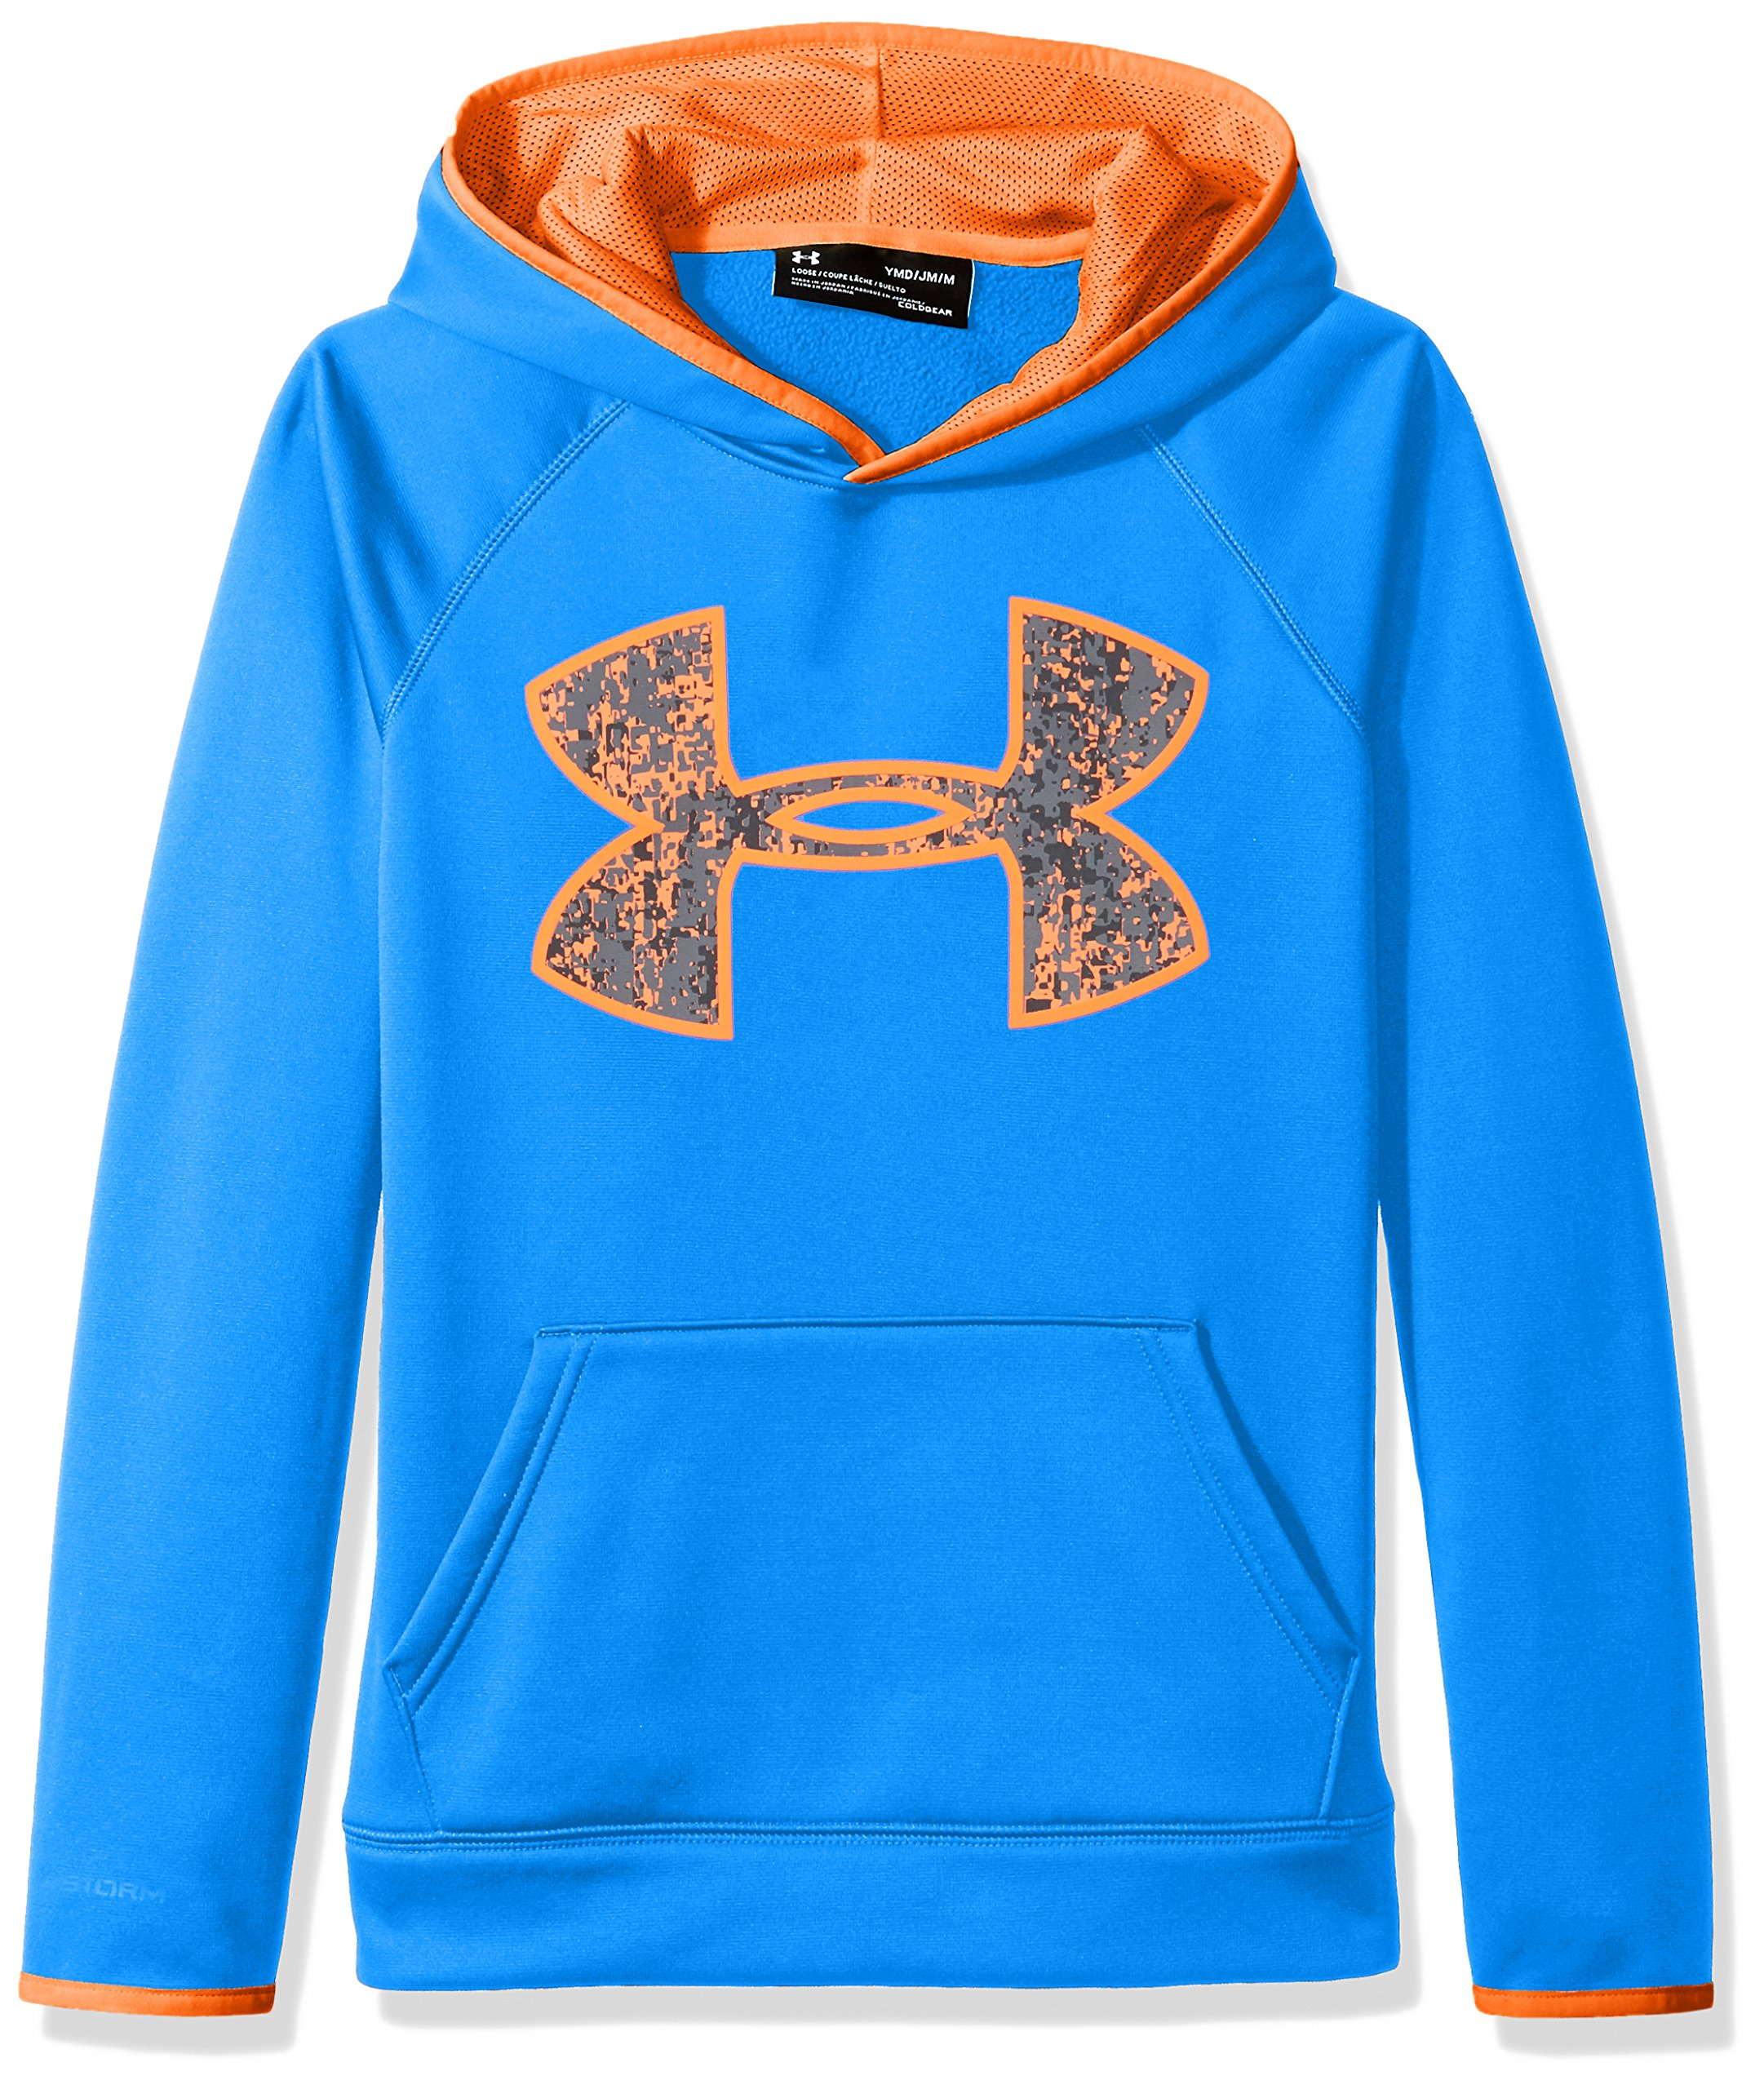 Under Armour Boys' Armour Fleece Big Logo Hoodie,Mako Blue (983)/Magma Orange, Youth X-Small